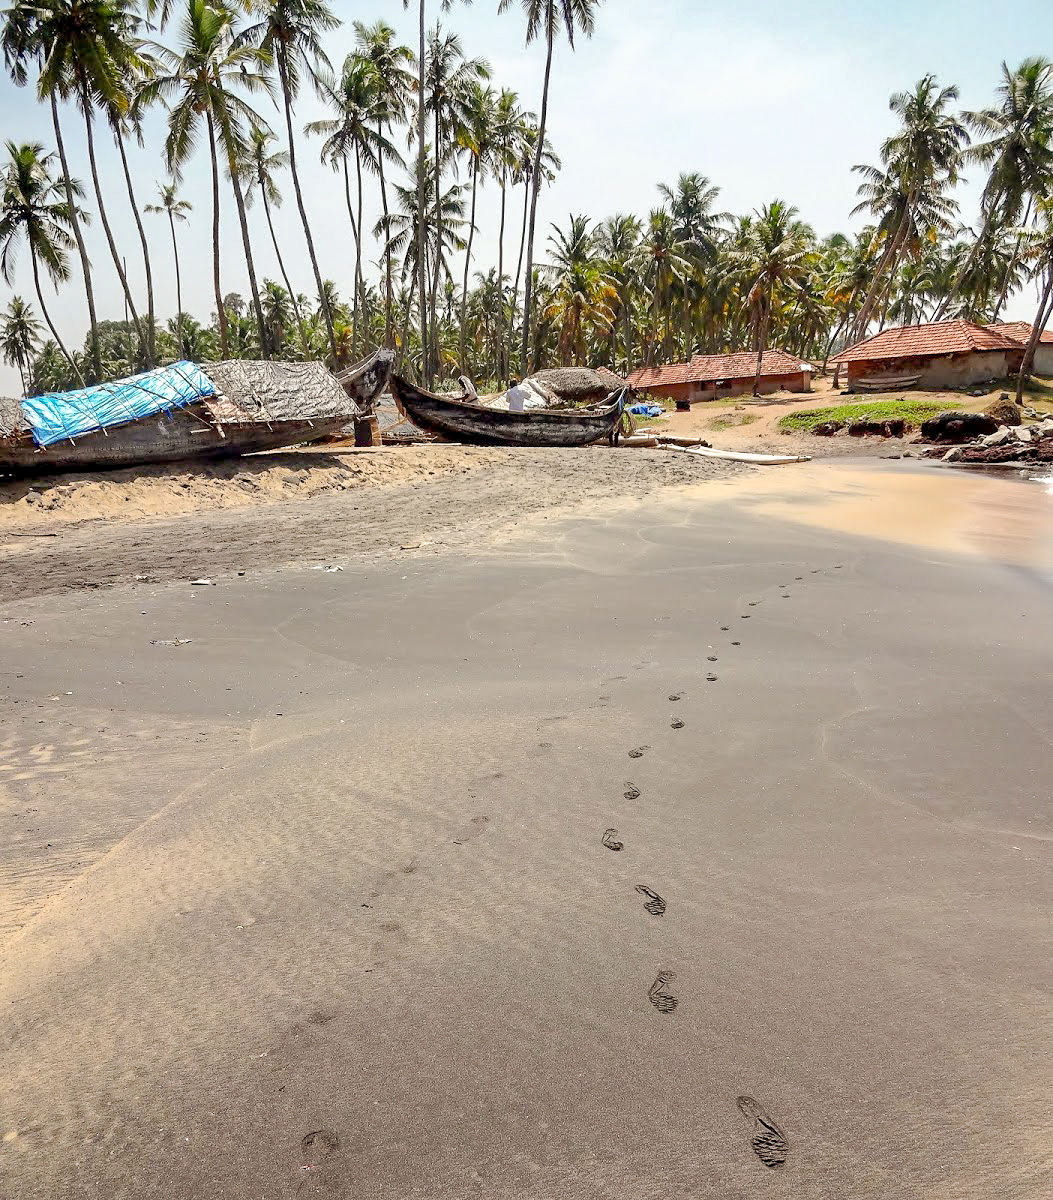 Footprints in the sand on Odayam beach, in the background wooden boats and palm trees, Varkala, Kerala, India